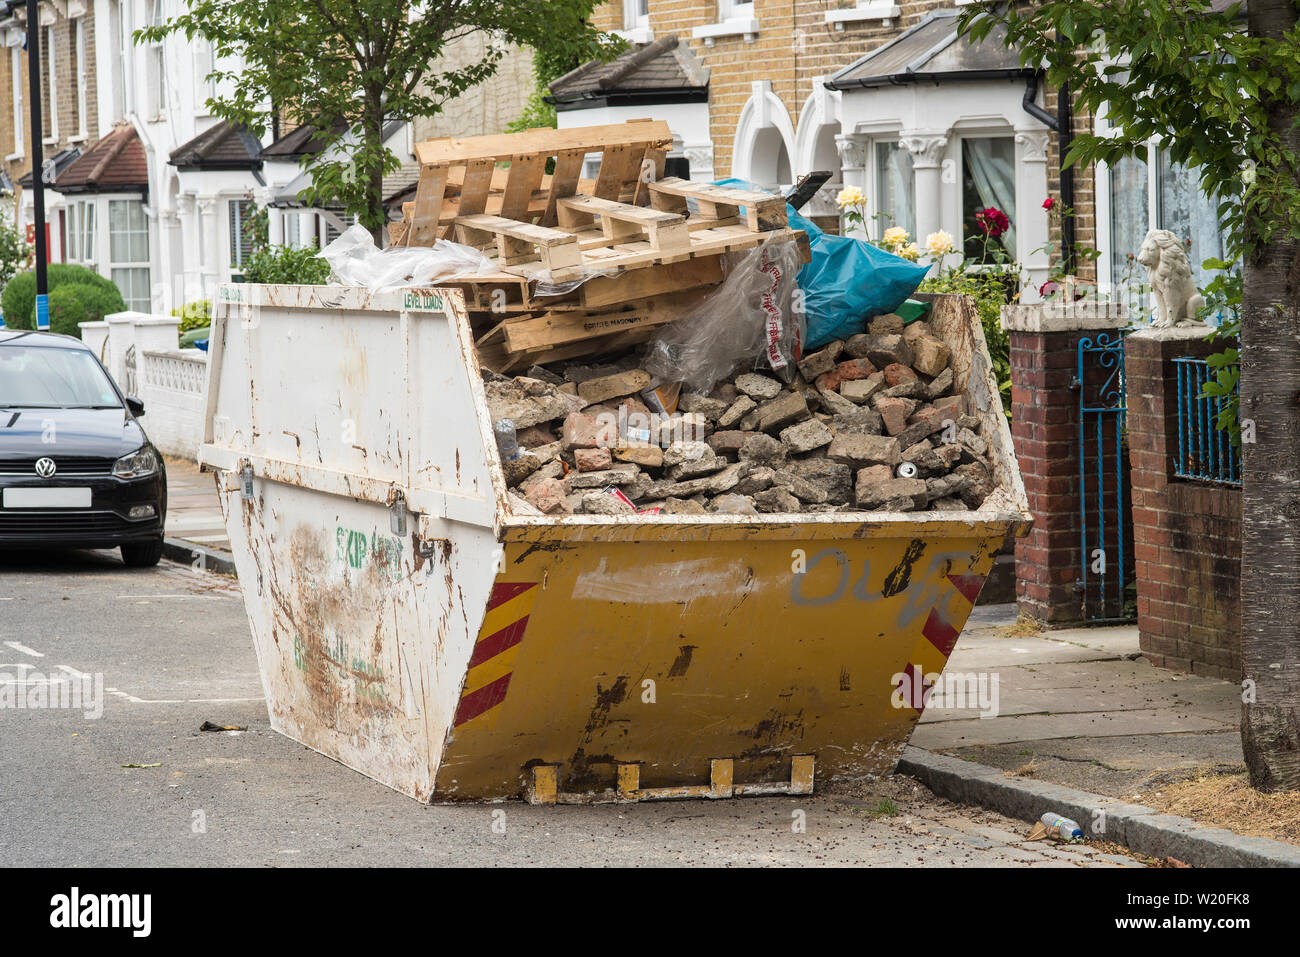 A skip of mixed construction / home renovation rubbish / waste likely destined for landfill, not recycling. De-branded. Stock Photo